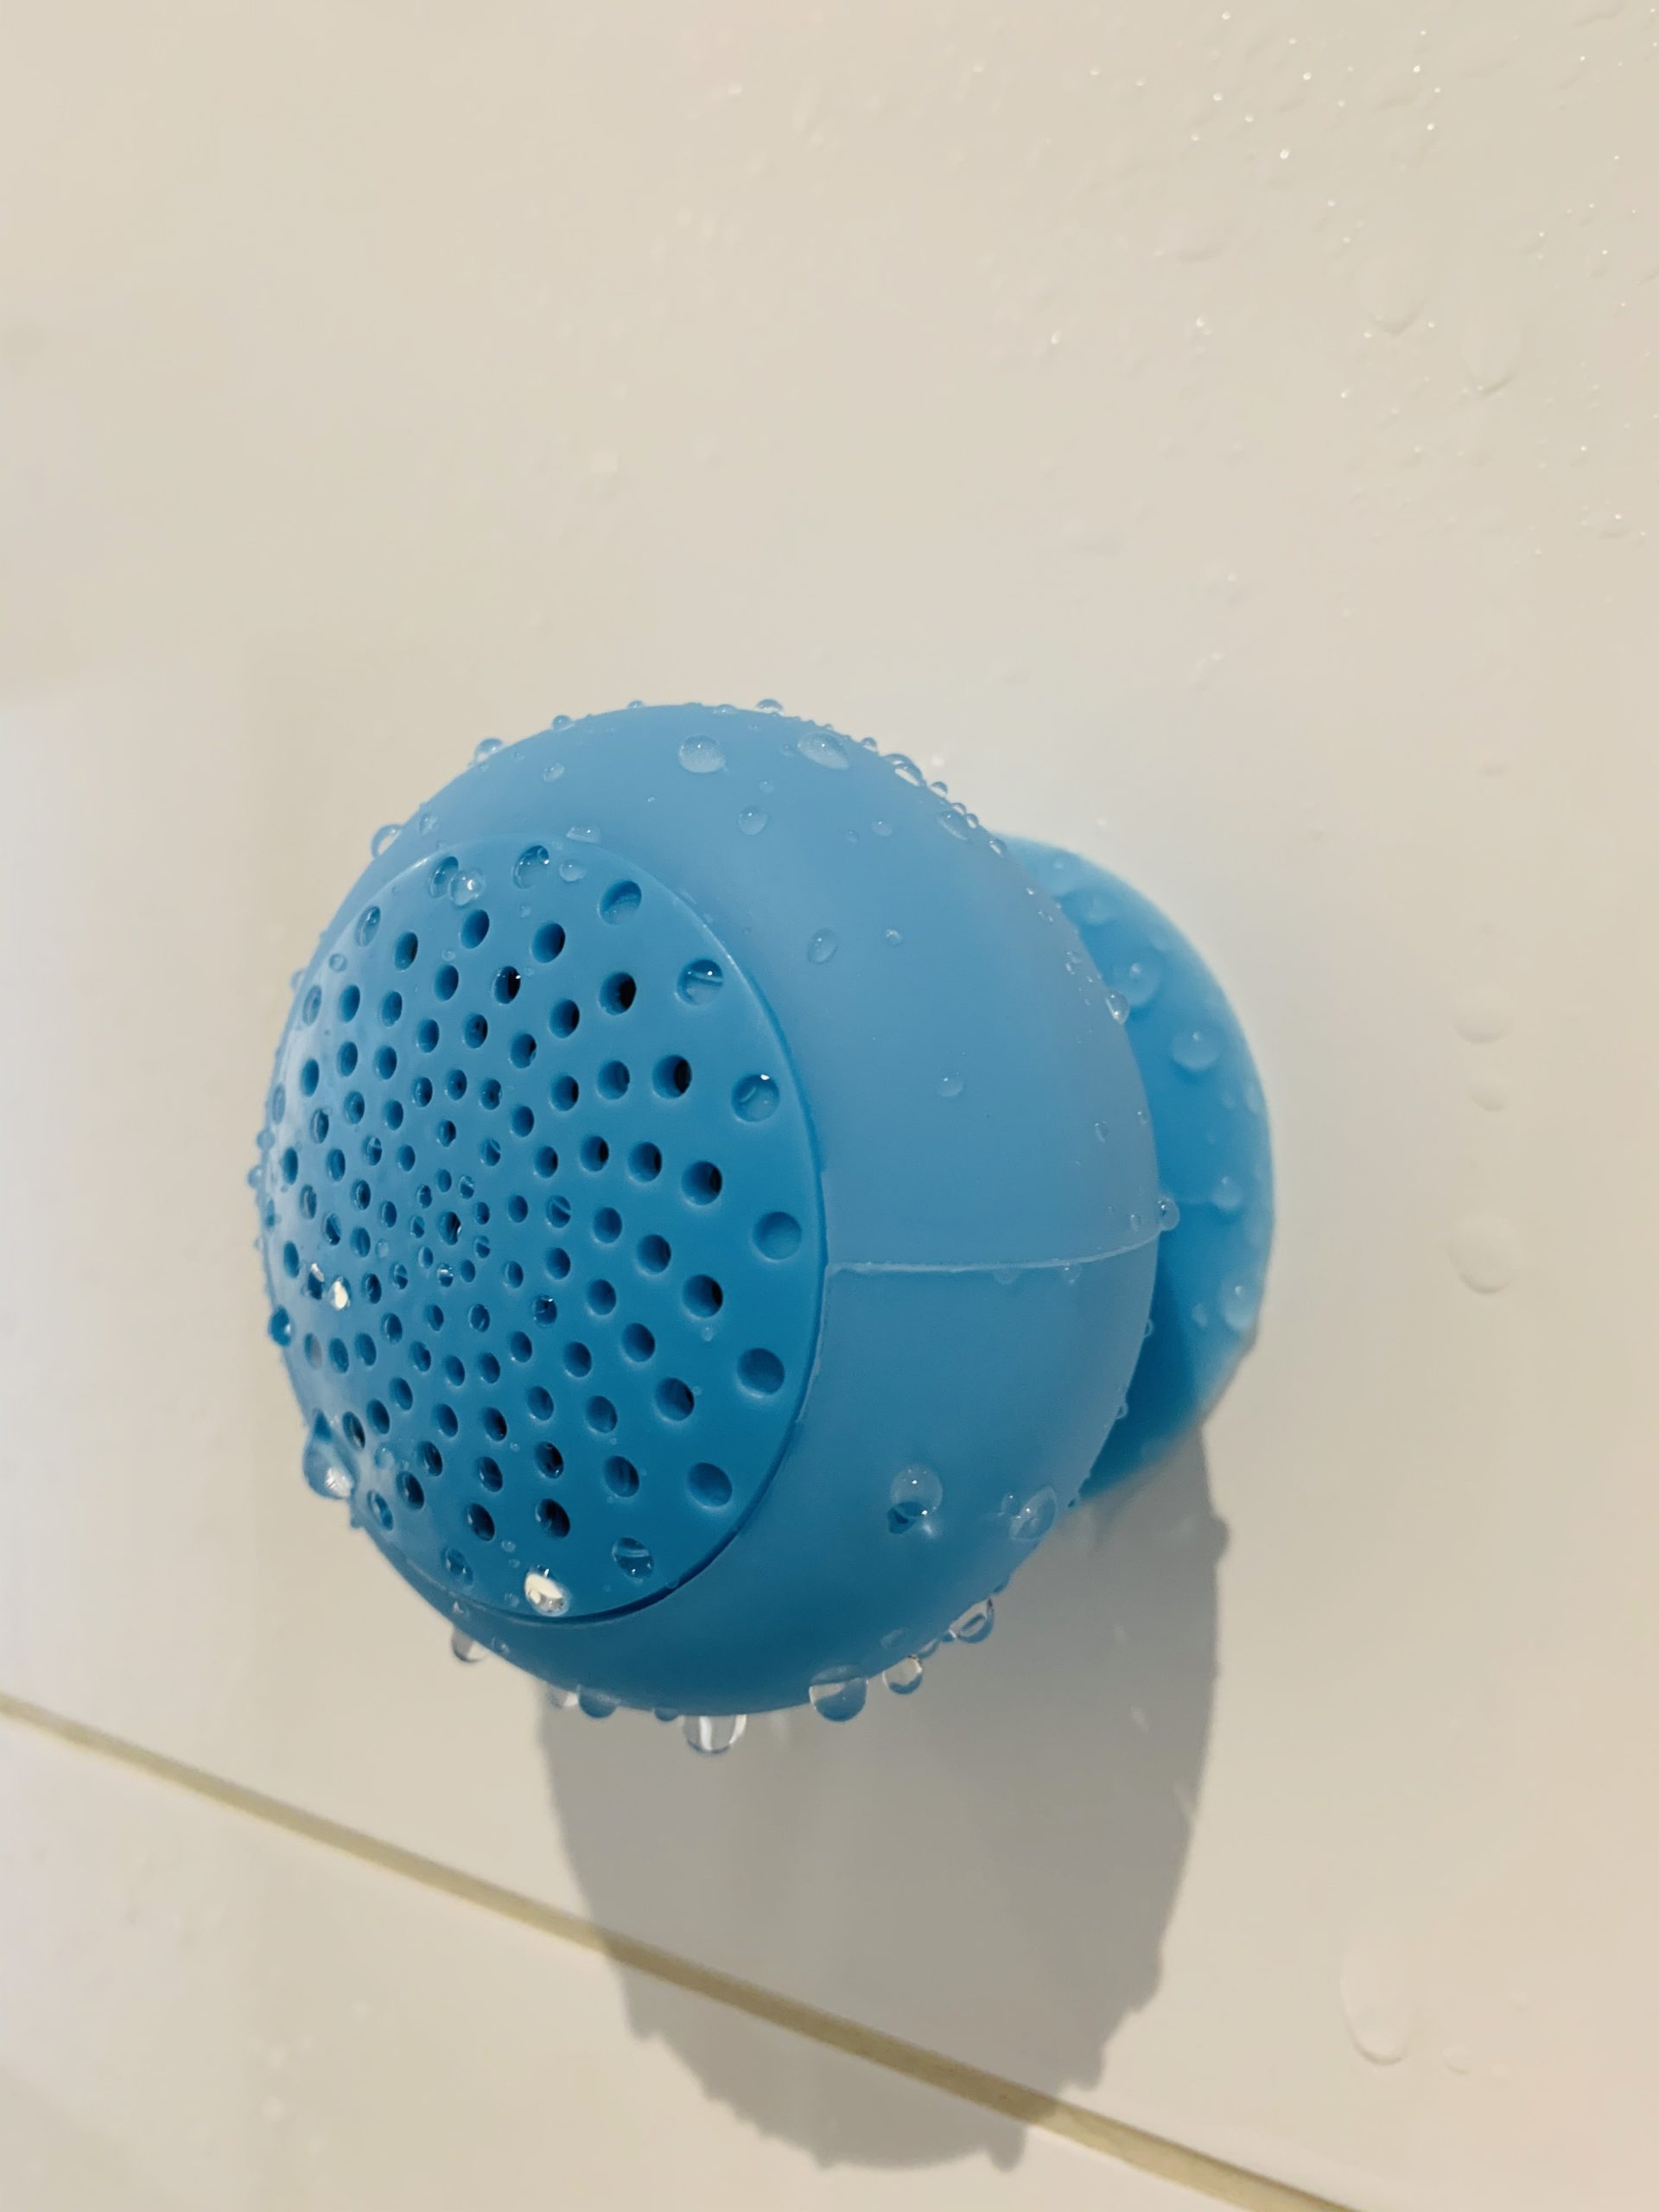 Water resistant wireless Bluetooth speaker in a showeroom picture